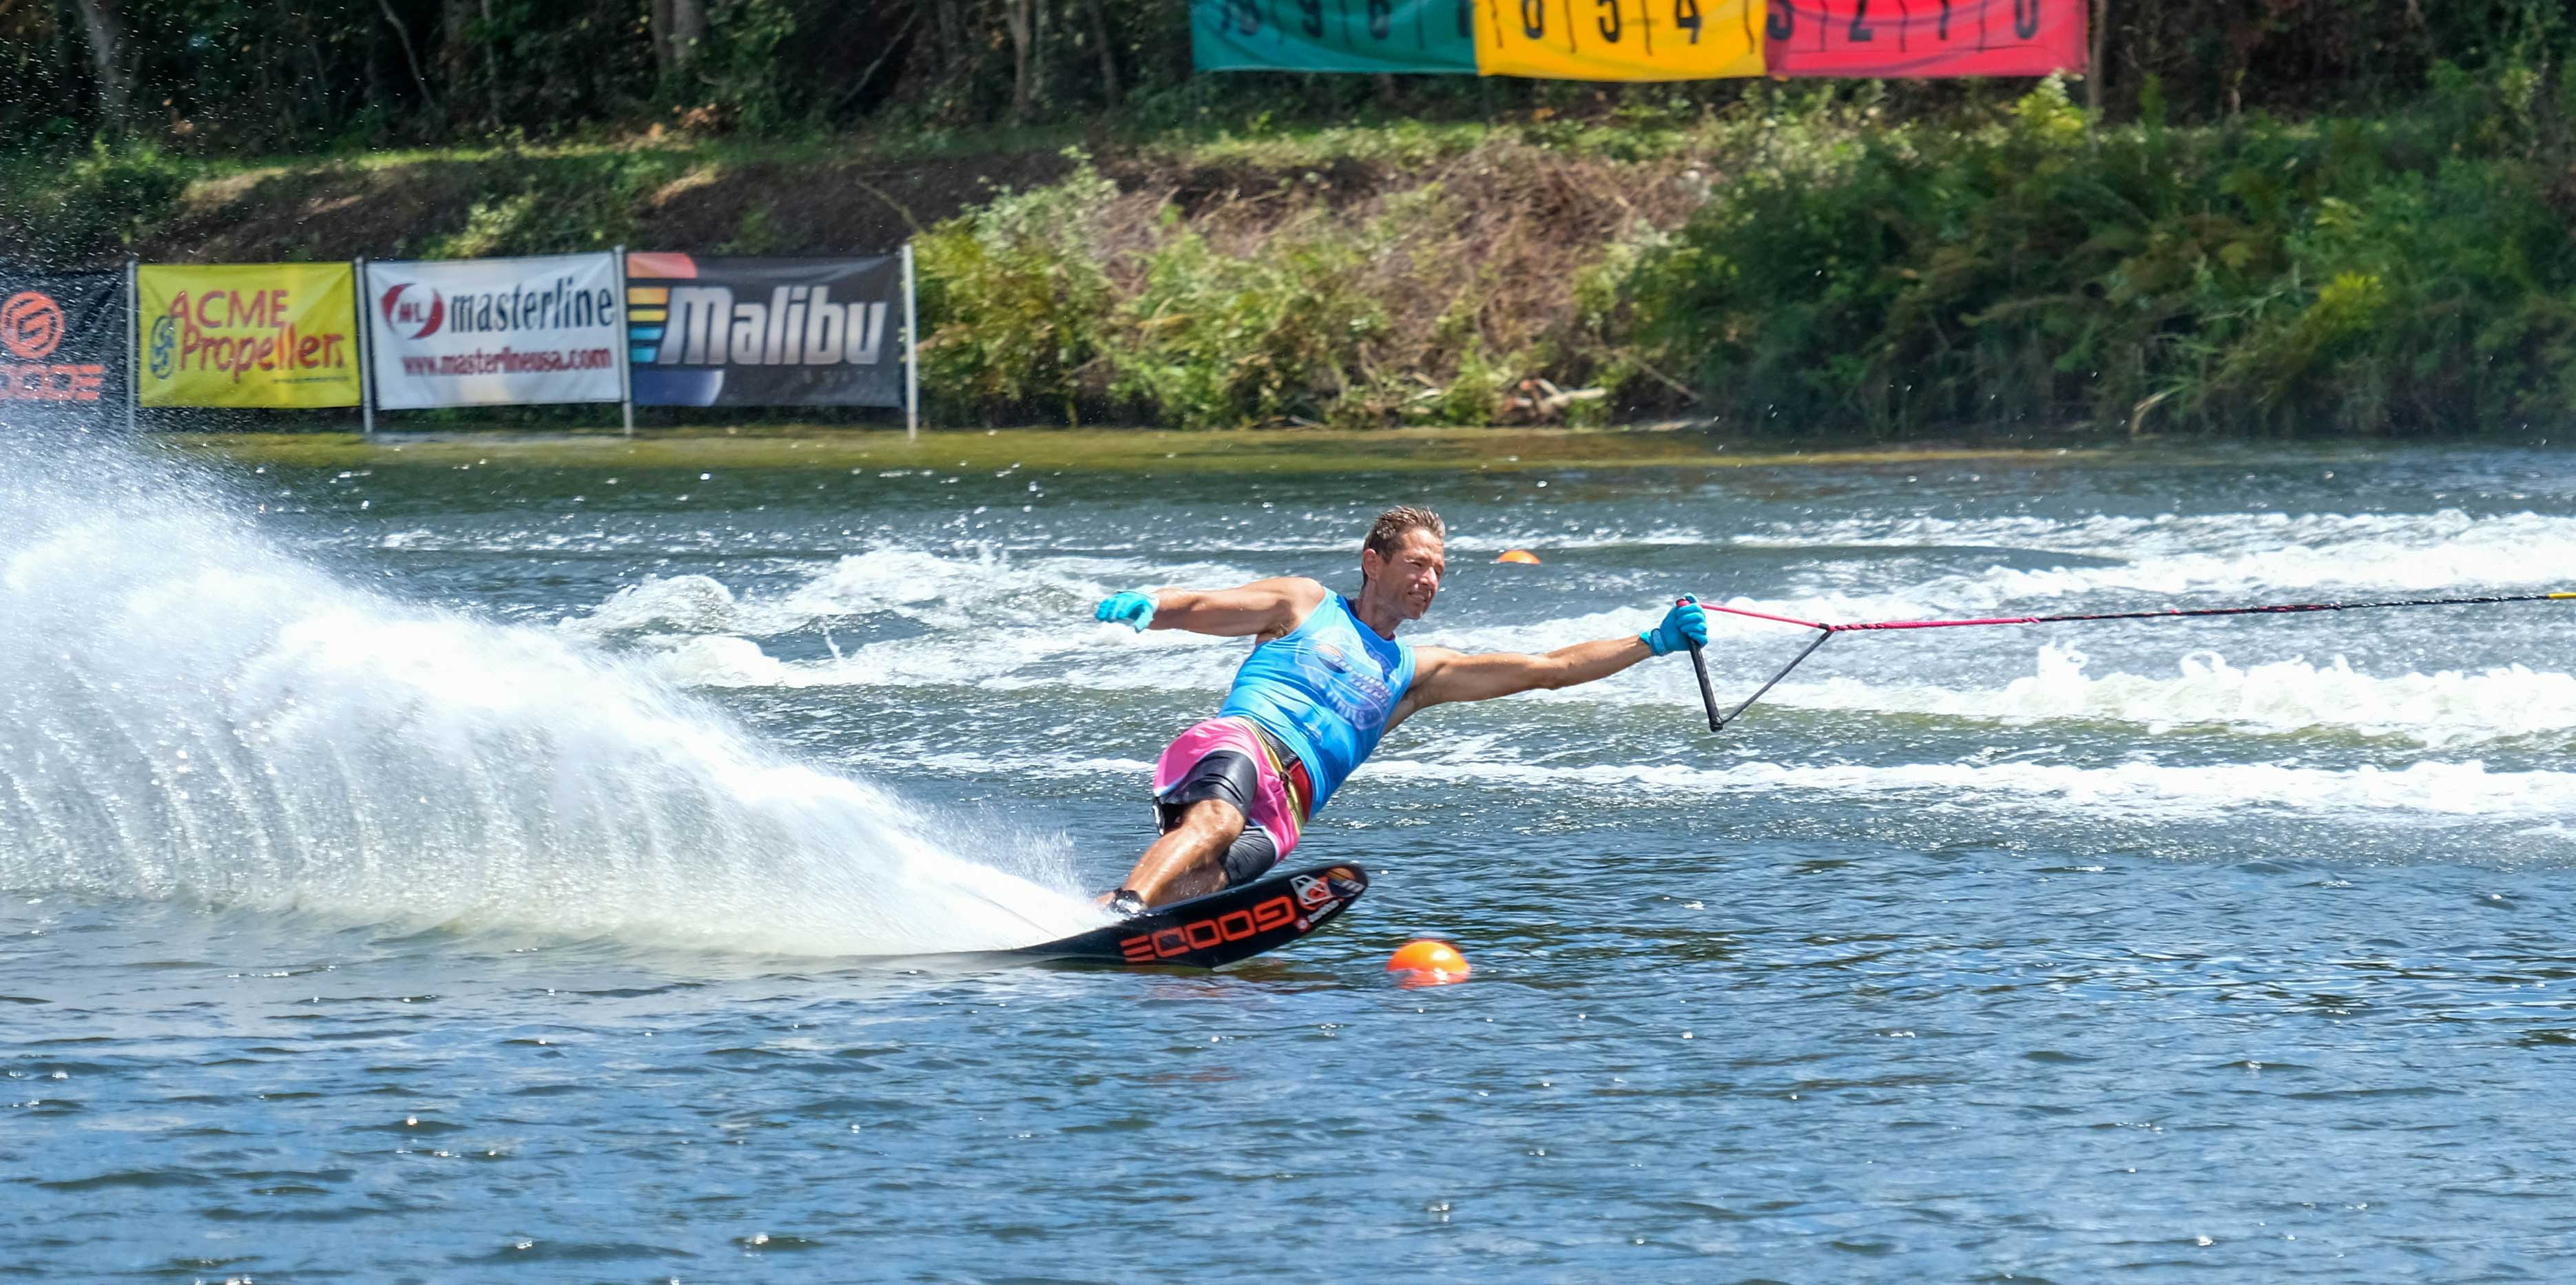 Waterski Competition Malibu Open with Response TXi